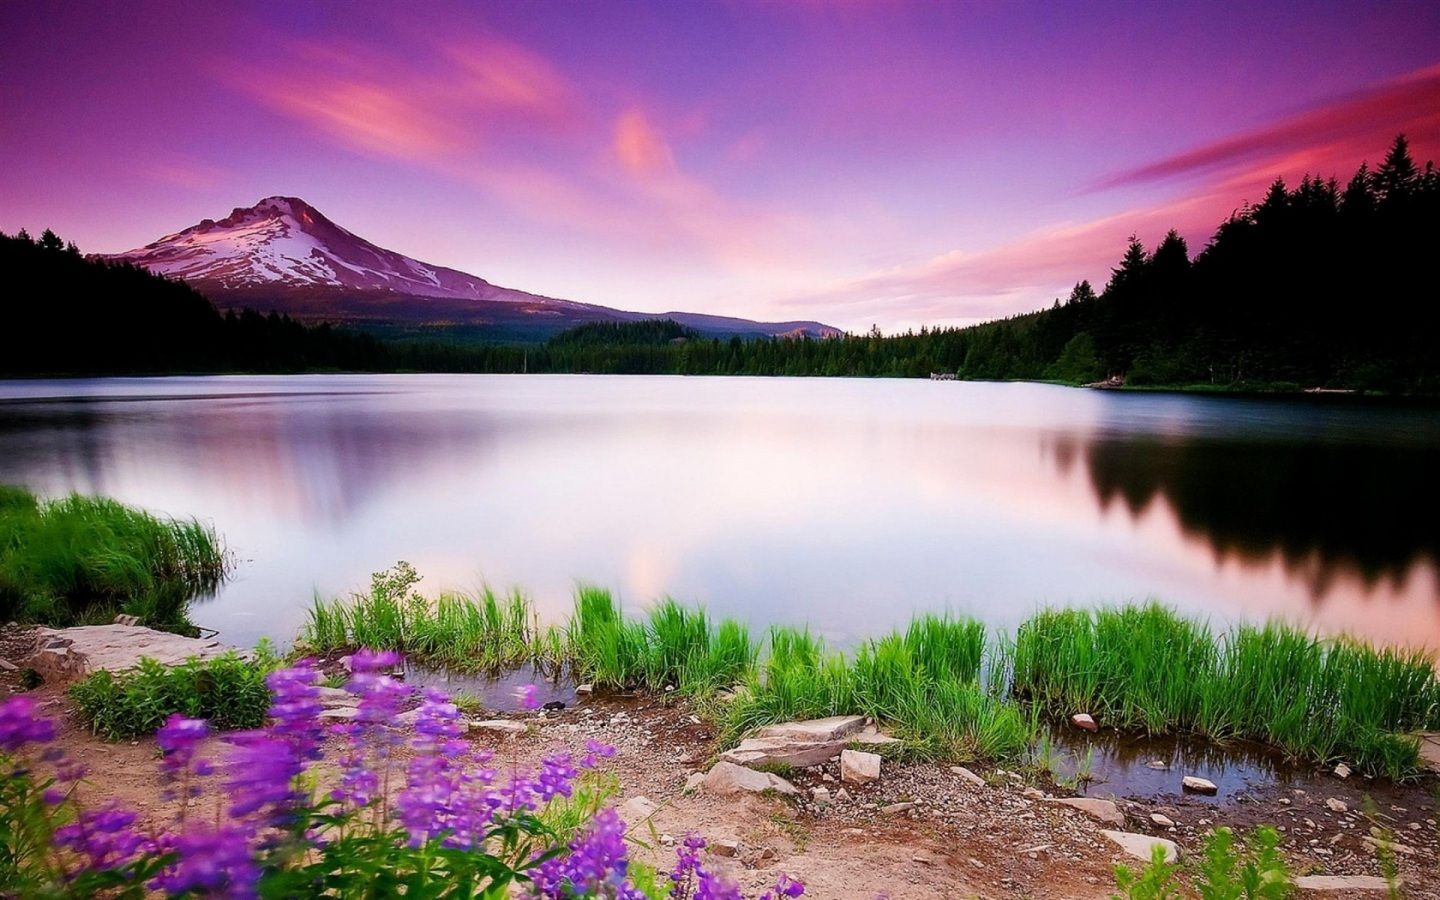 Wallpapers For Gt Beautiful Scenery Mobile Beautiful Nature Scenery Wallpaper Wall Beautiful Landscape Wallpaper Beautiful Nature Wallpaper Landscape Wallpaper